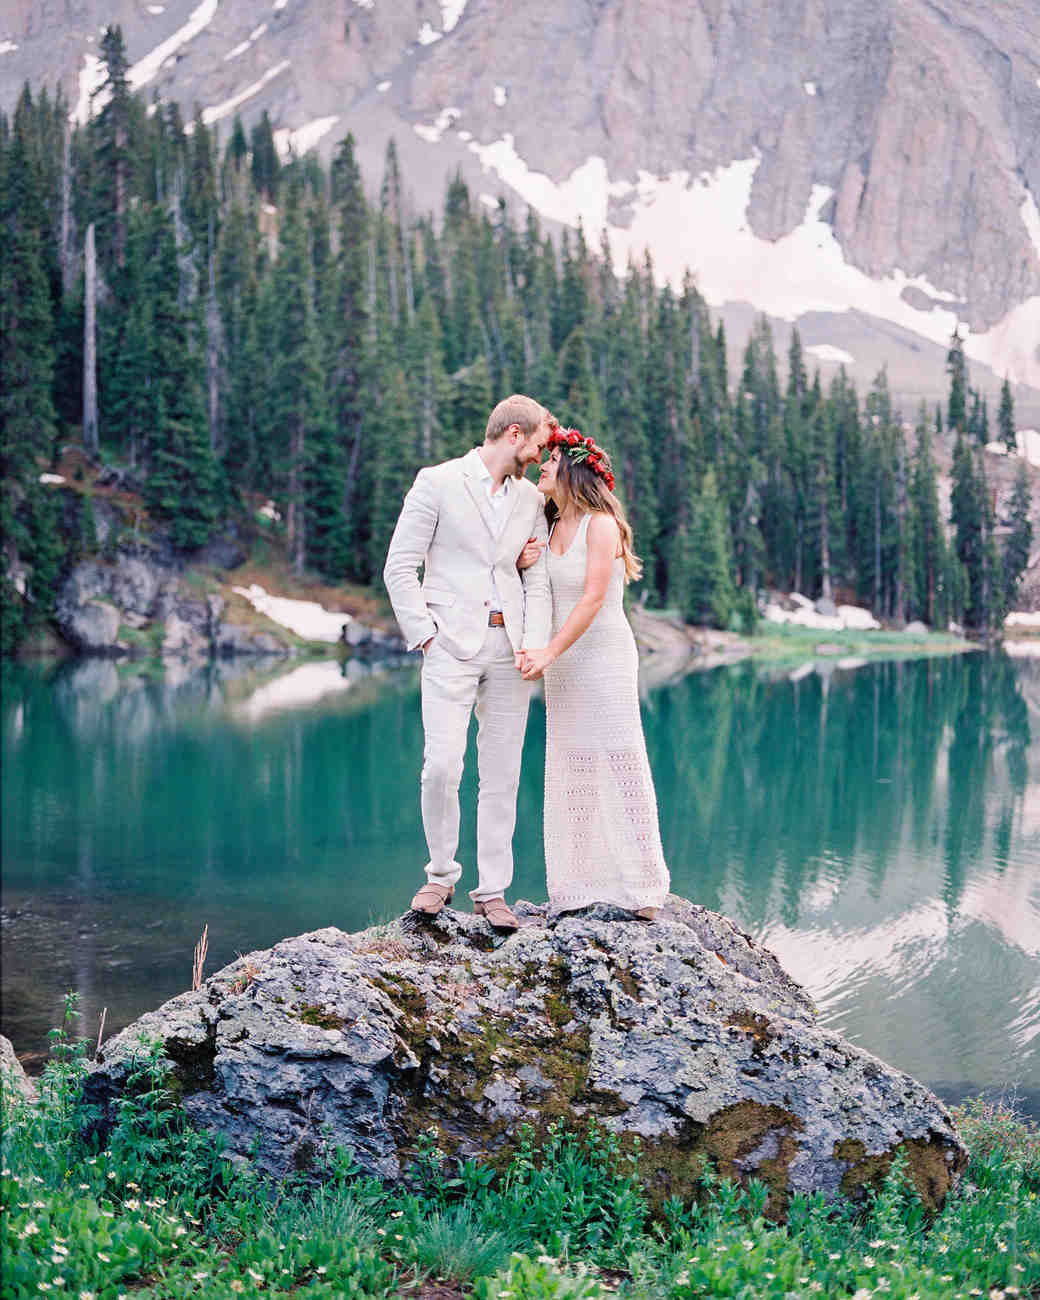 An Intimate Lakeside Rehearsal Dinner in the Mountains